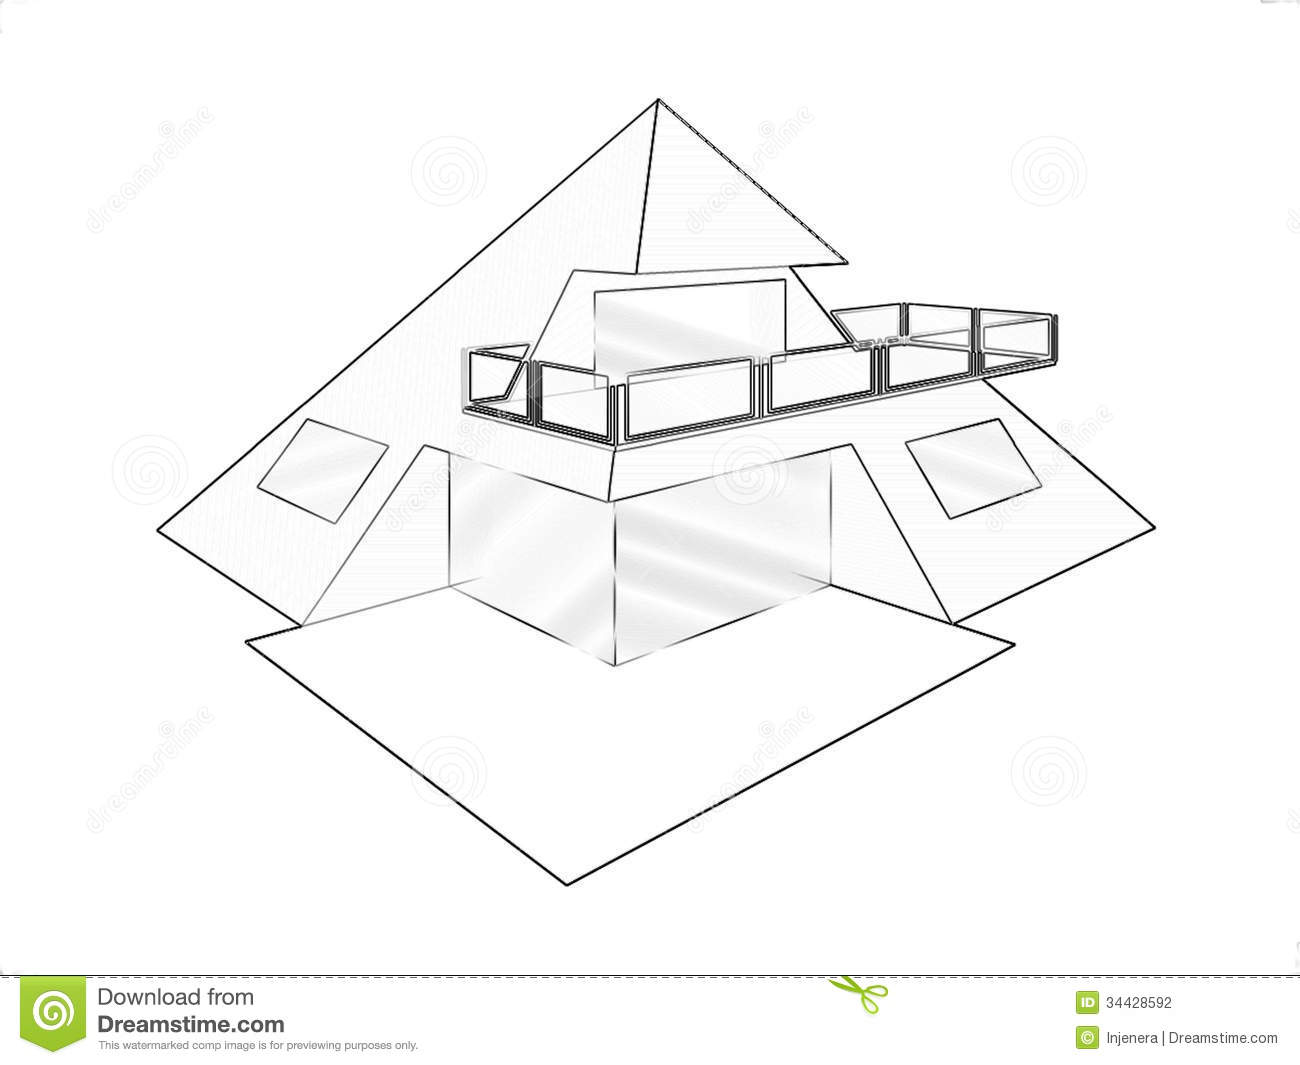 House Architecture Drawing drawing abstract house stock photography - image: 26209982